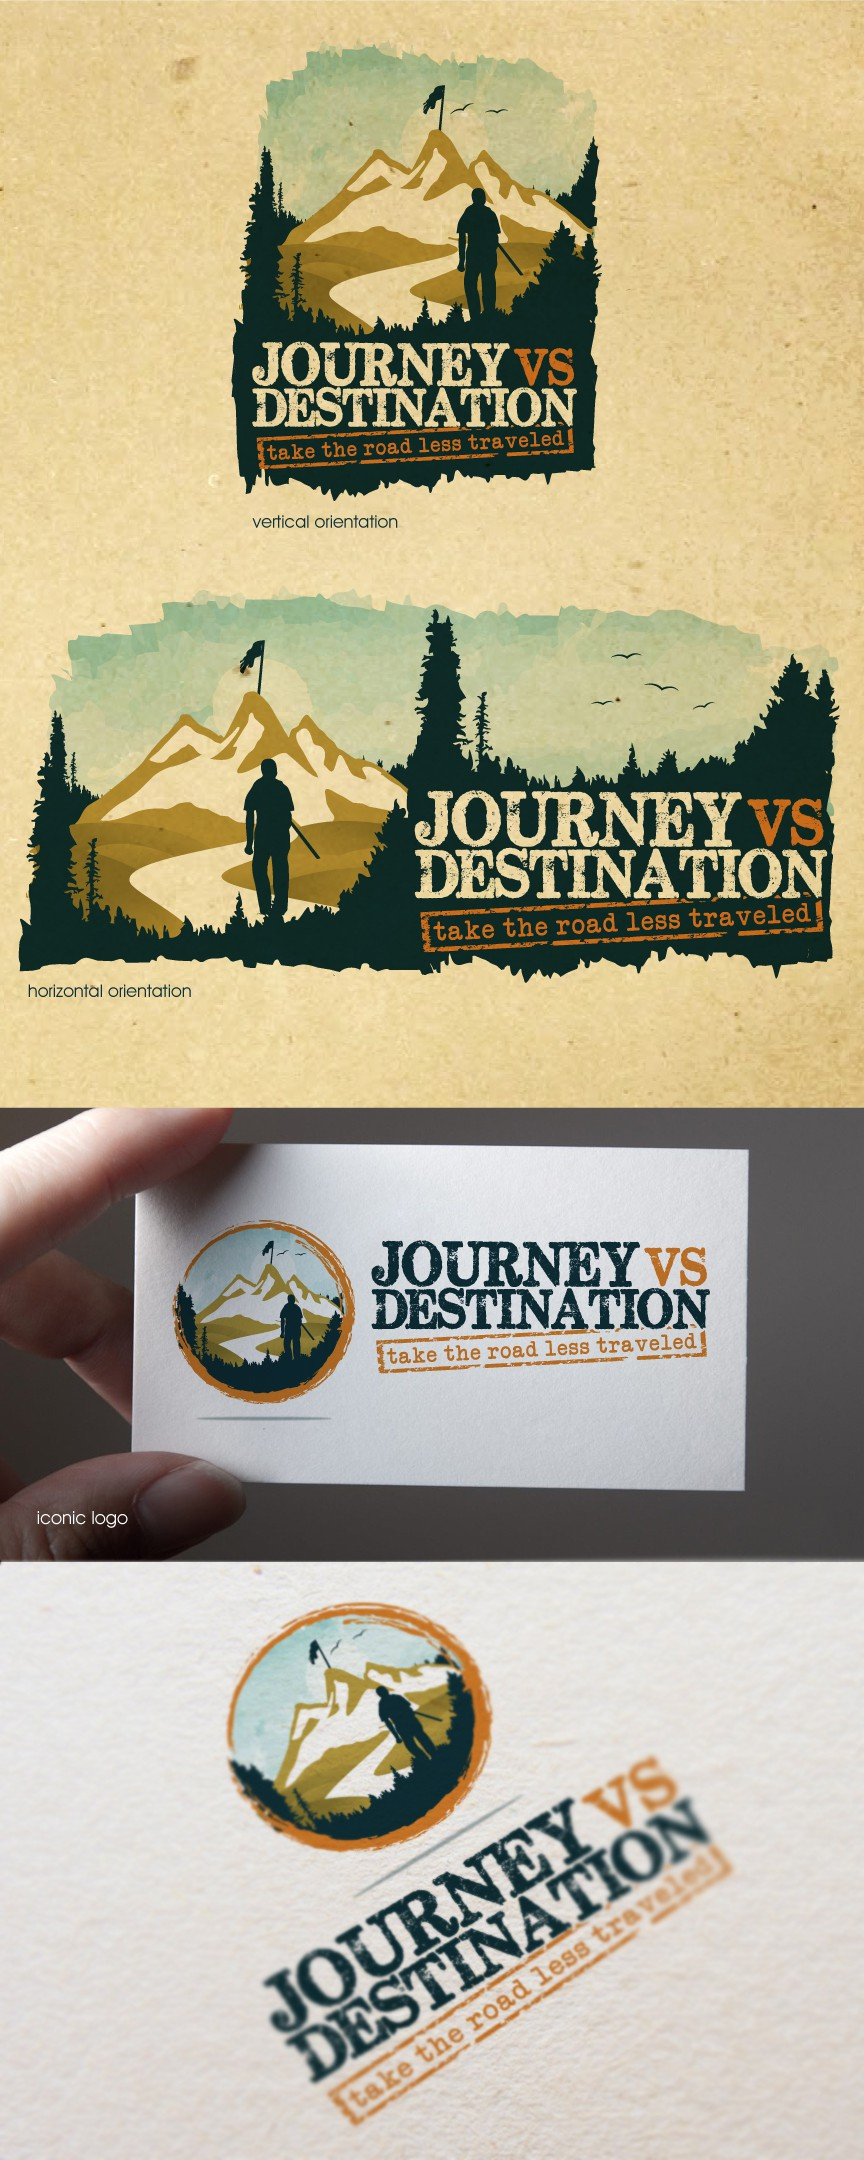 Make a difference! Create the next AWESOME logo for JourneyvsDestination.com!